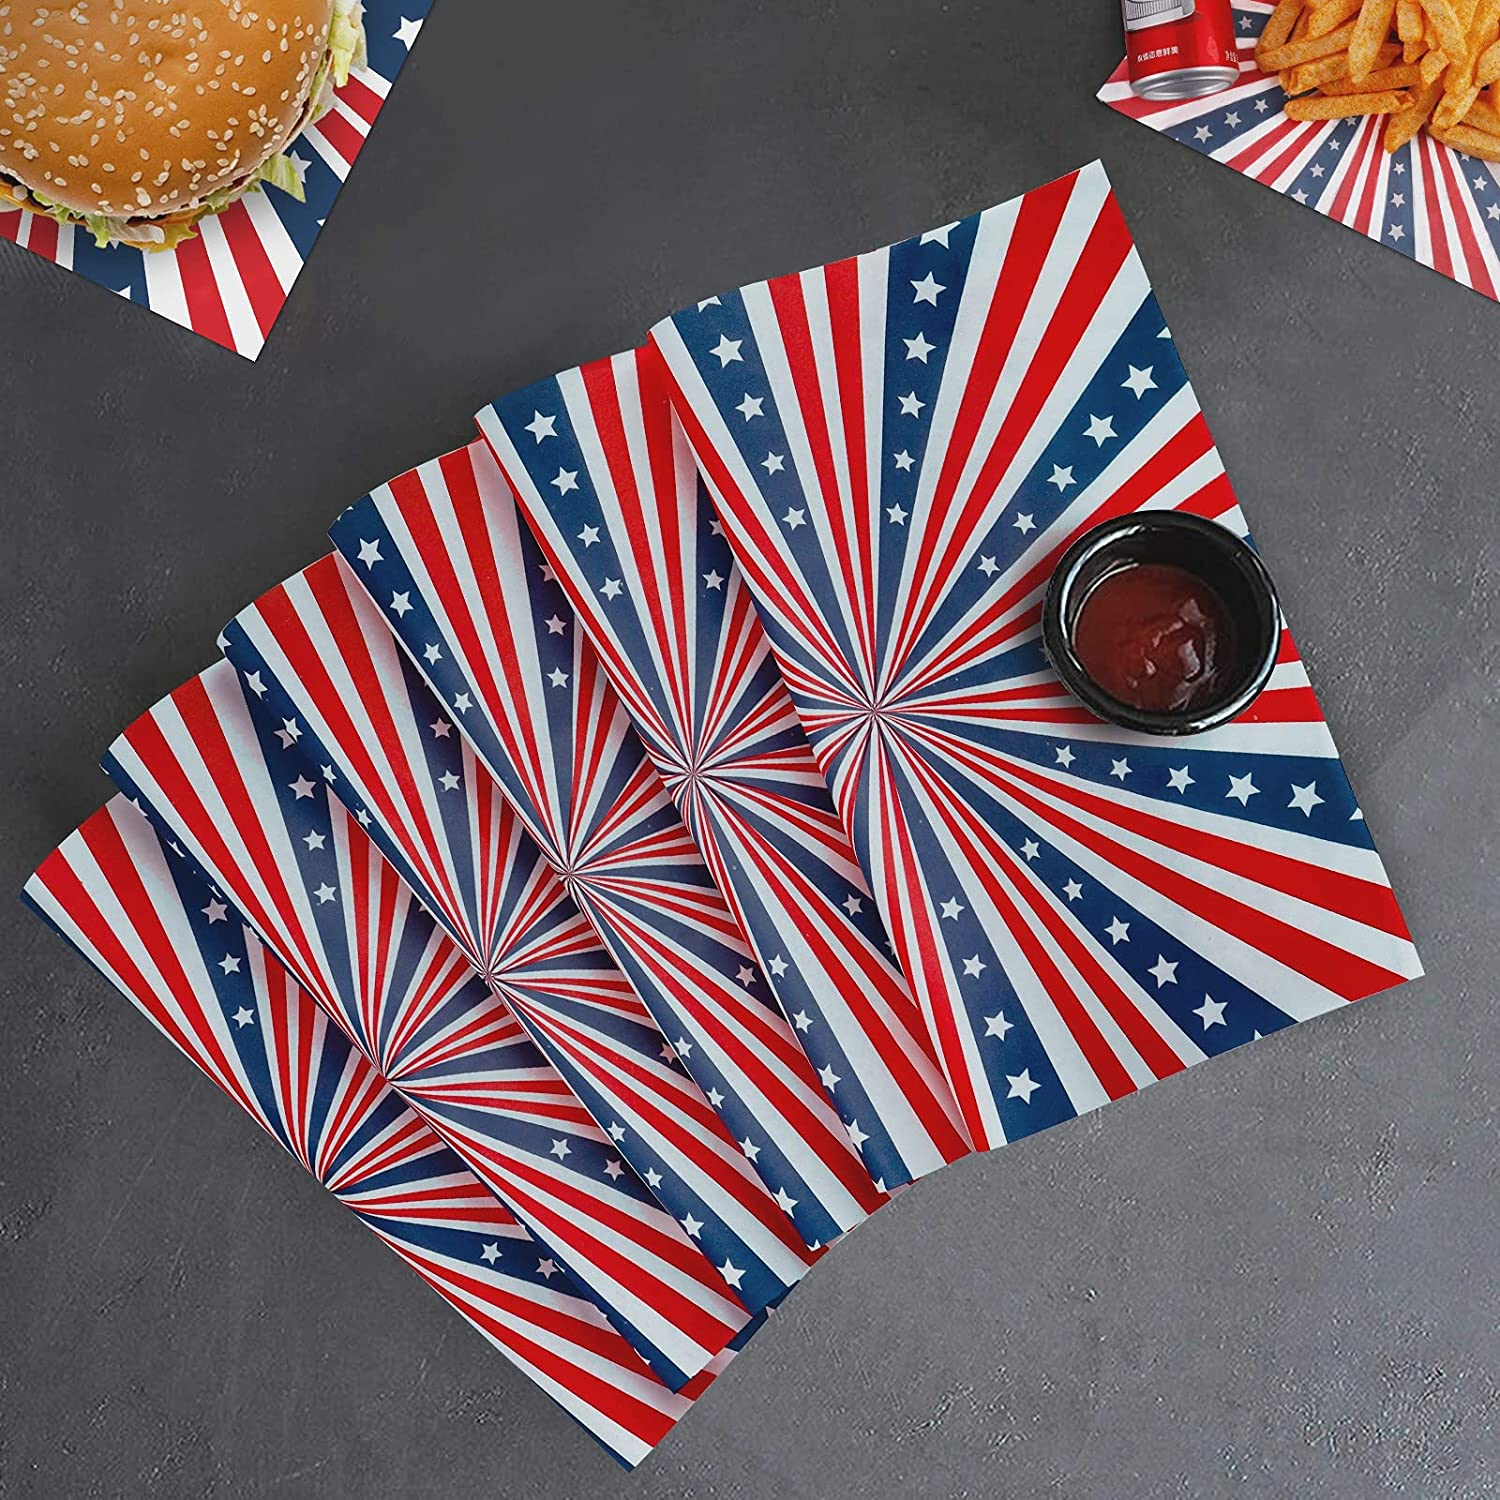 YBB 100Pcs Deli Wax Paper Sheets for Food, Patriotic American Flag Star&Stripe Patterns Basket Liners Food Picnic Paper Sheets Greaseproof Deli Wrapping Sheets, 10 x 10 Inch